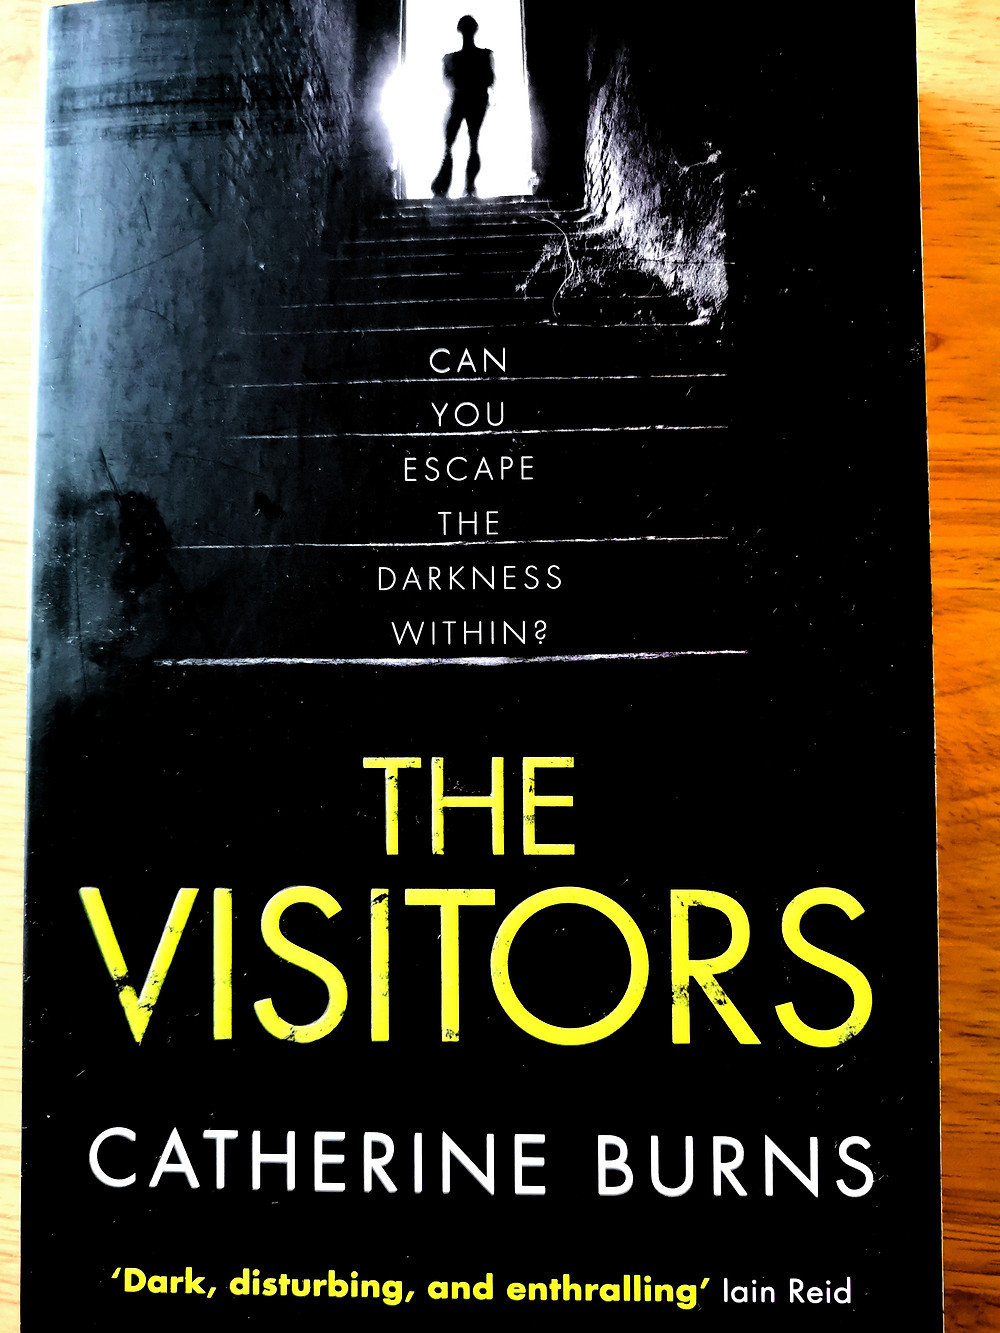 """Cover photo of Catherine Burns' 'The Visitors': featuring a figure at the top of a dark staircase with the subtitle """"Can you escape the darkness within?"""""""